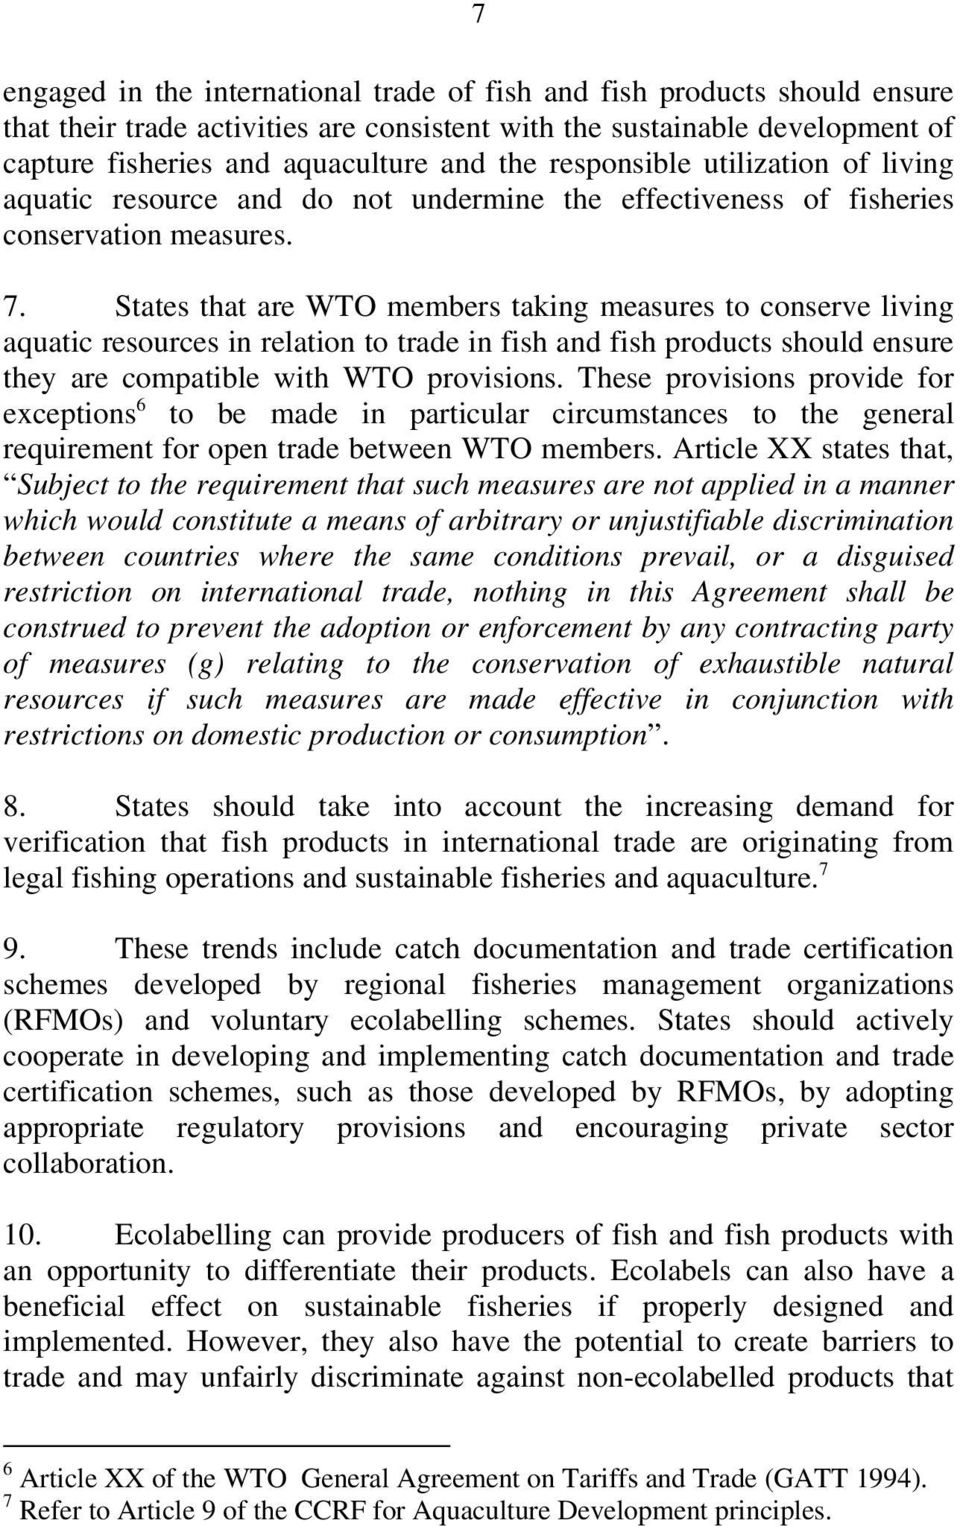 States that are WTO members taking measures to conserve living aquatic resources in relation to trade in fish and fish products should ensure they are compatible with WTO provisions.